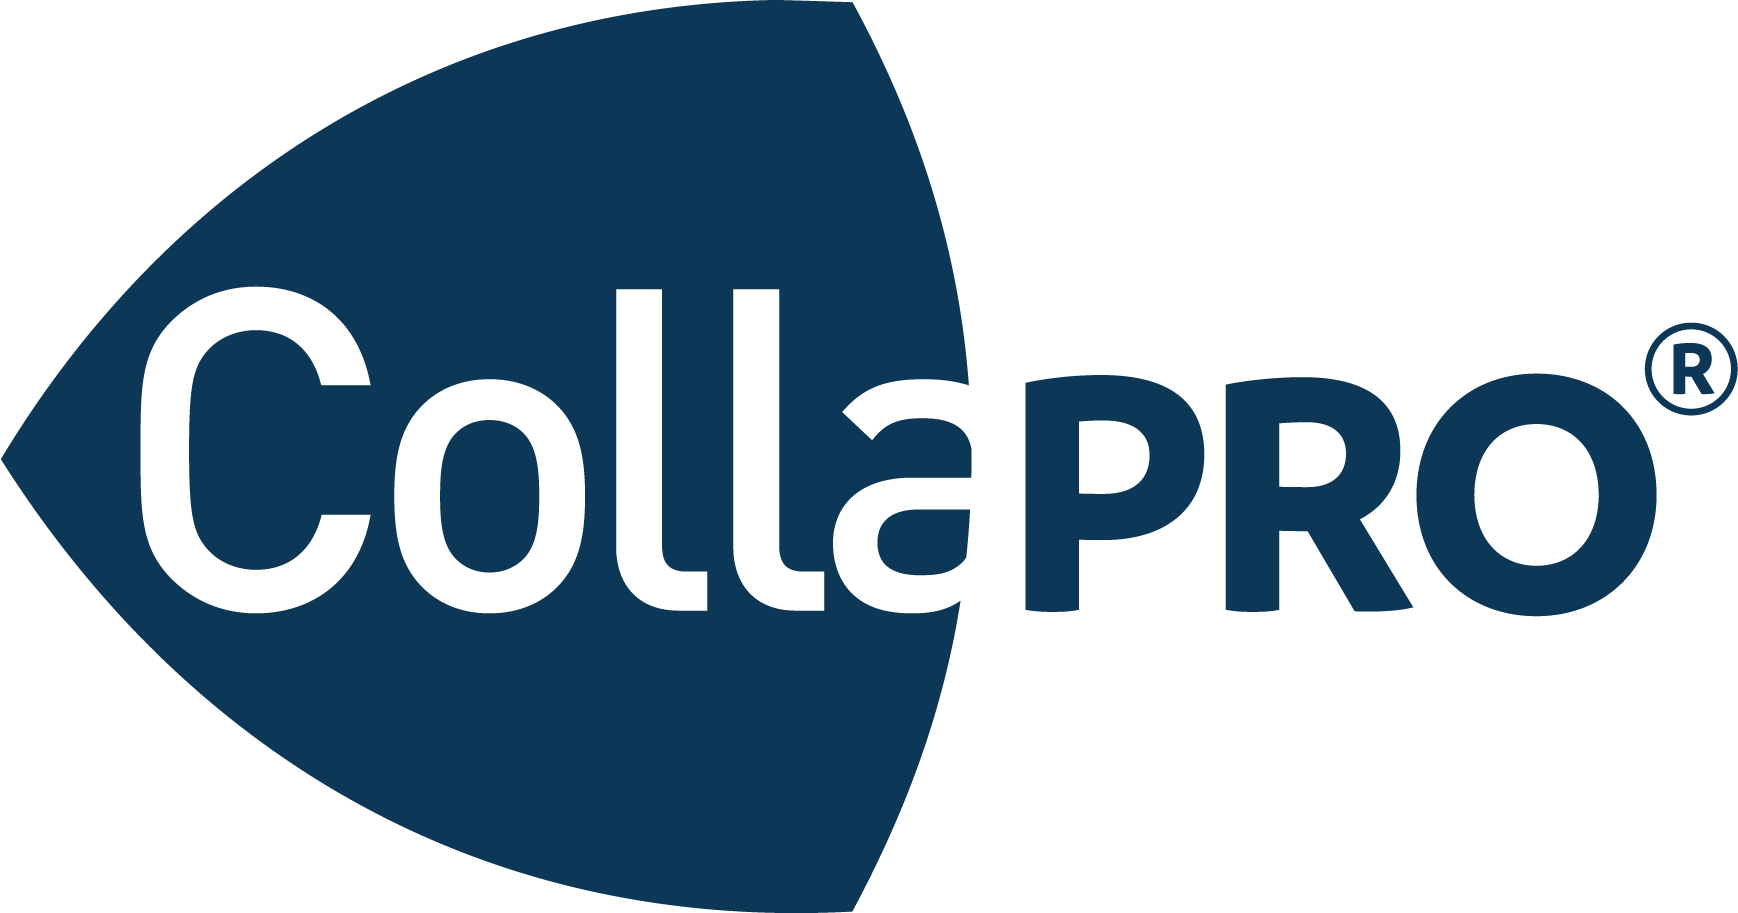 New Collapro Logo